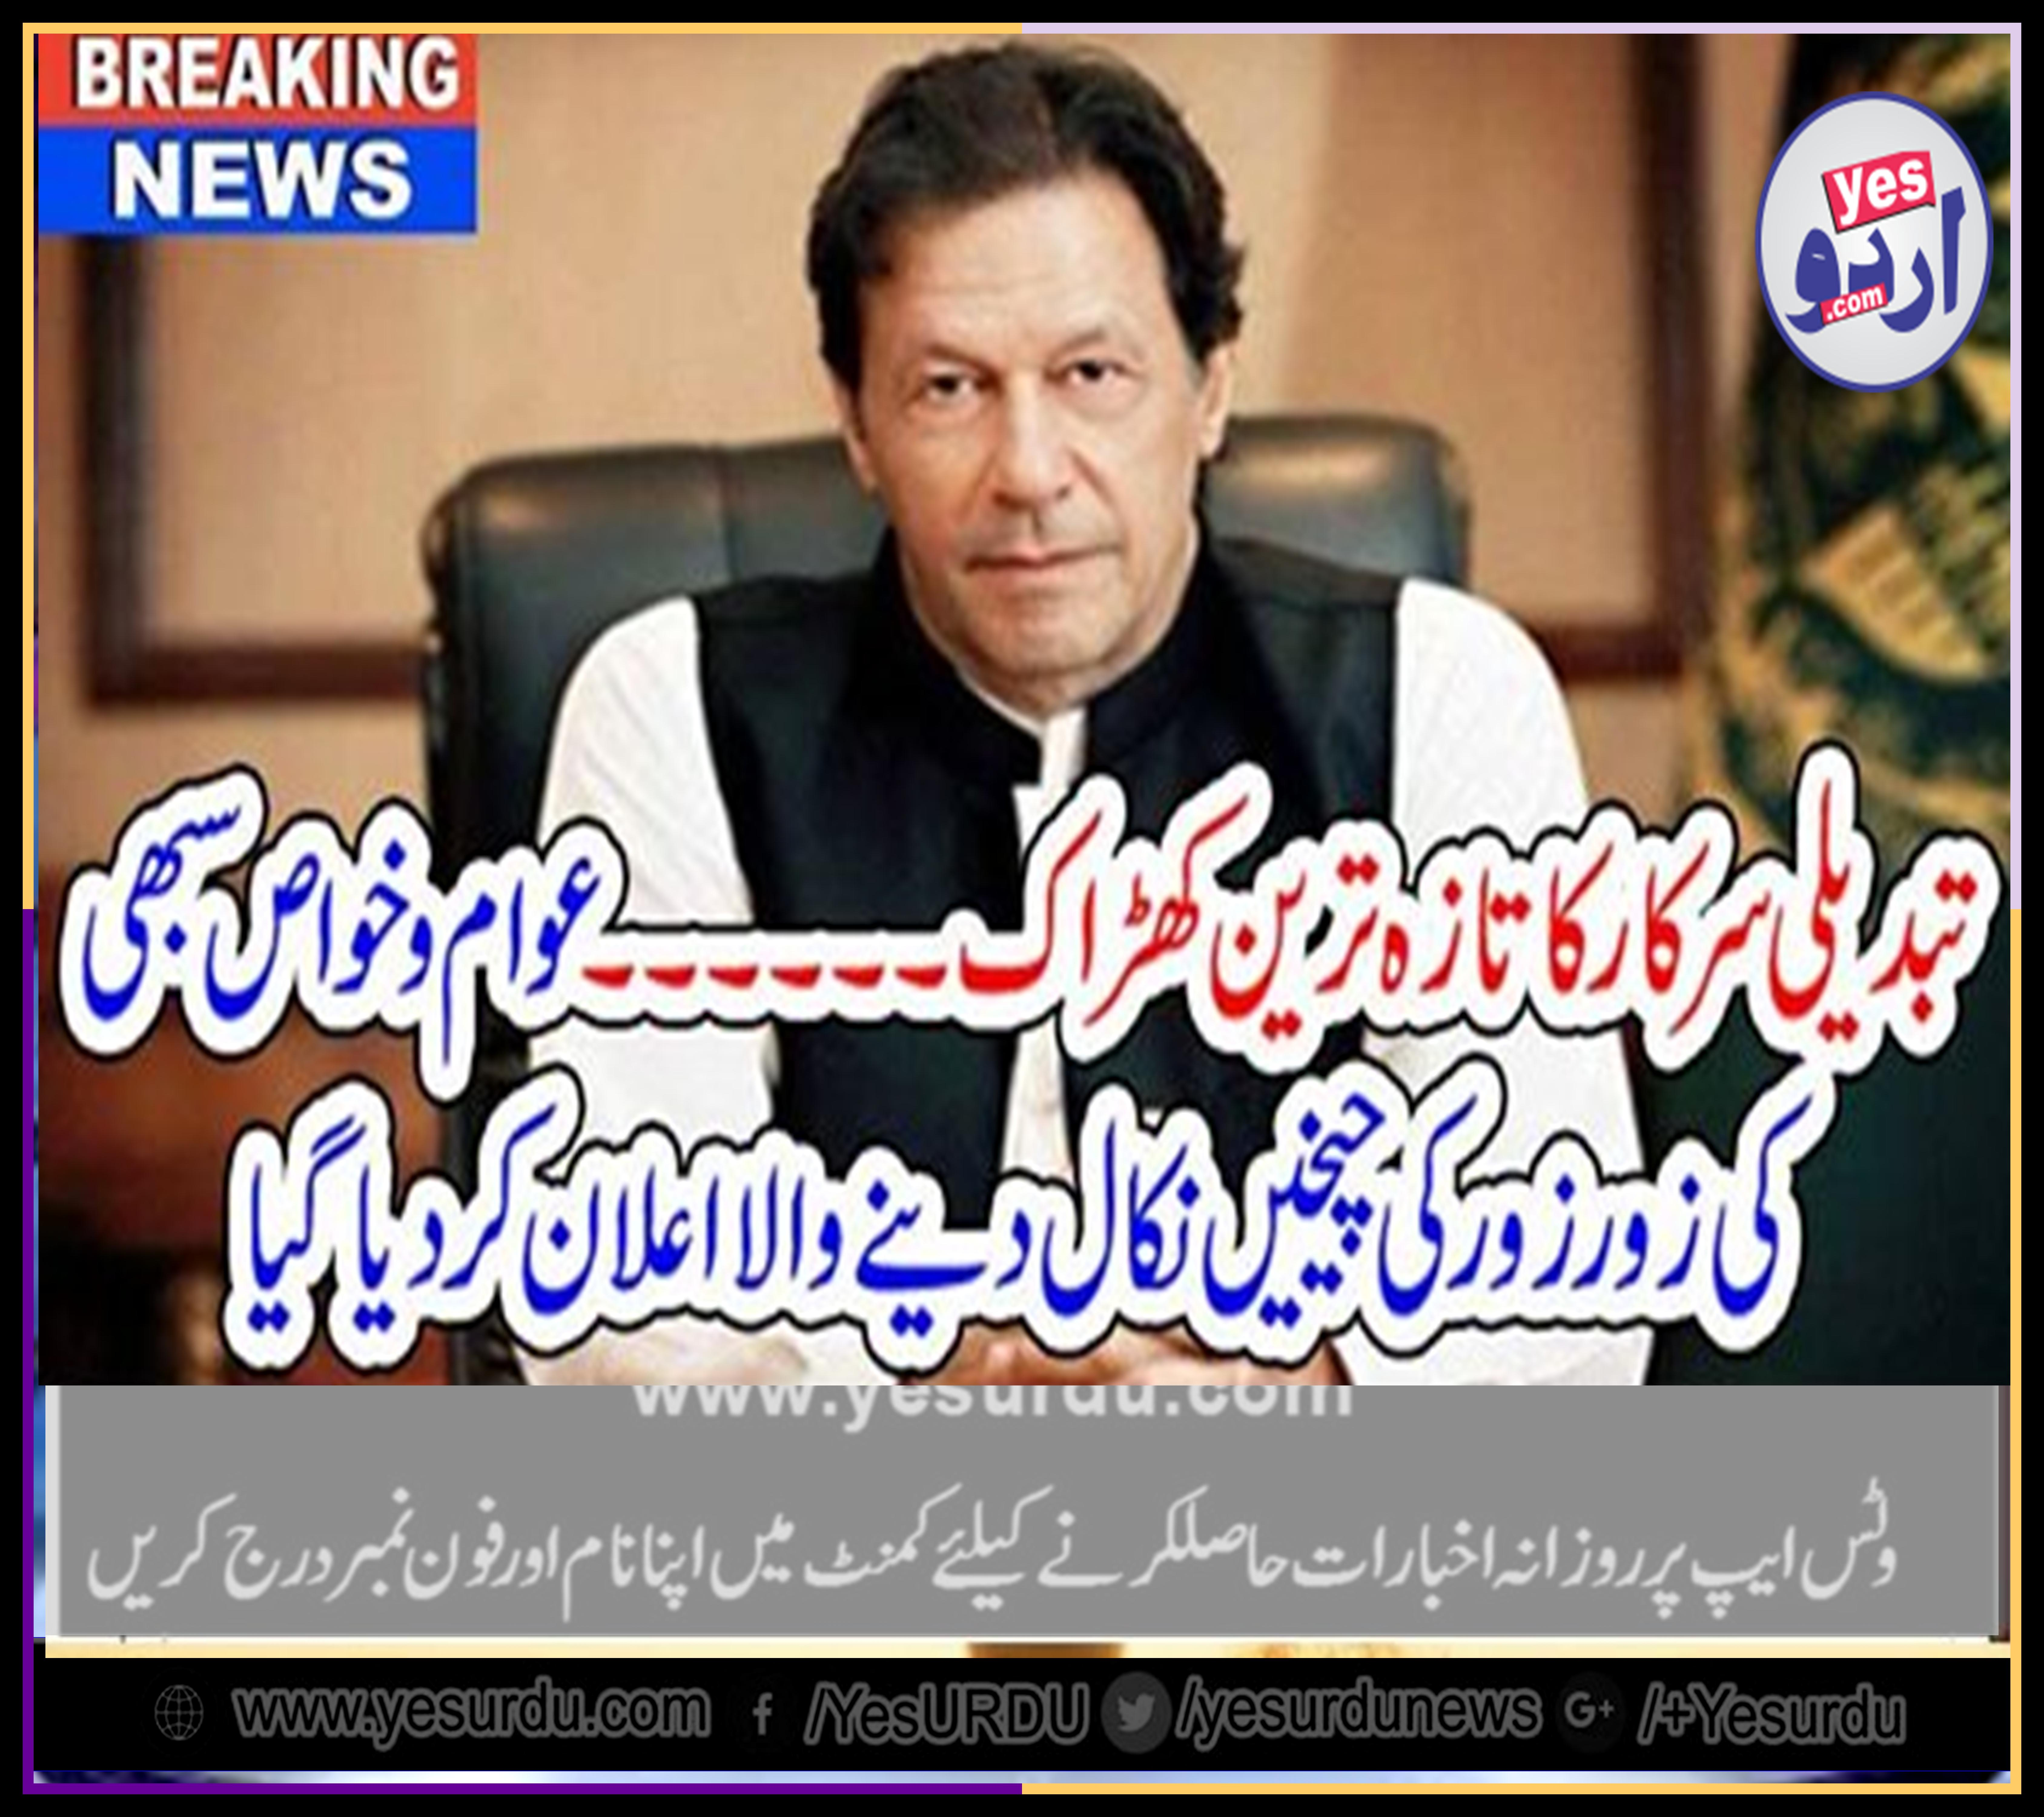 another, shock, for,  people, of, Pakistan, by, tabdeeli, Imran Khan, government, is, going, to, impose, another, heavy, weight, decision, for, people